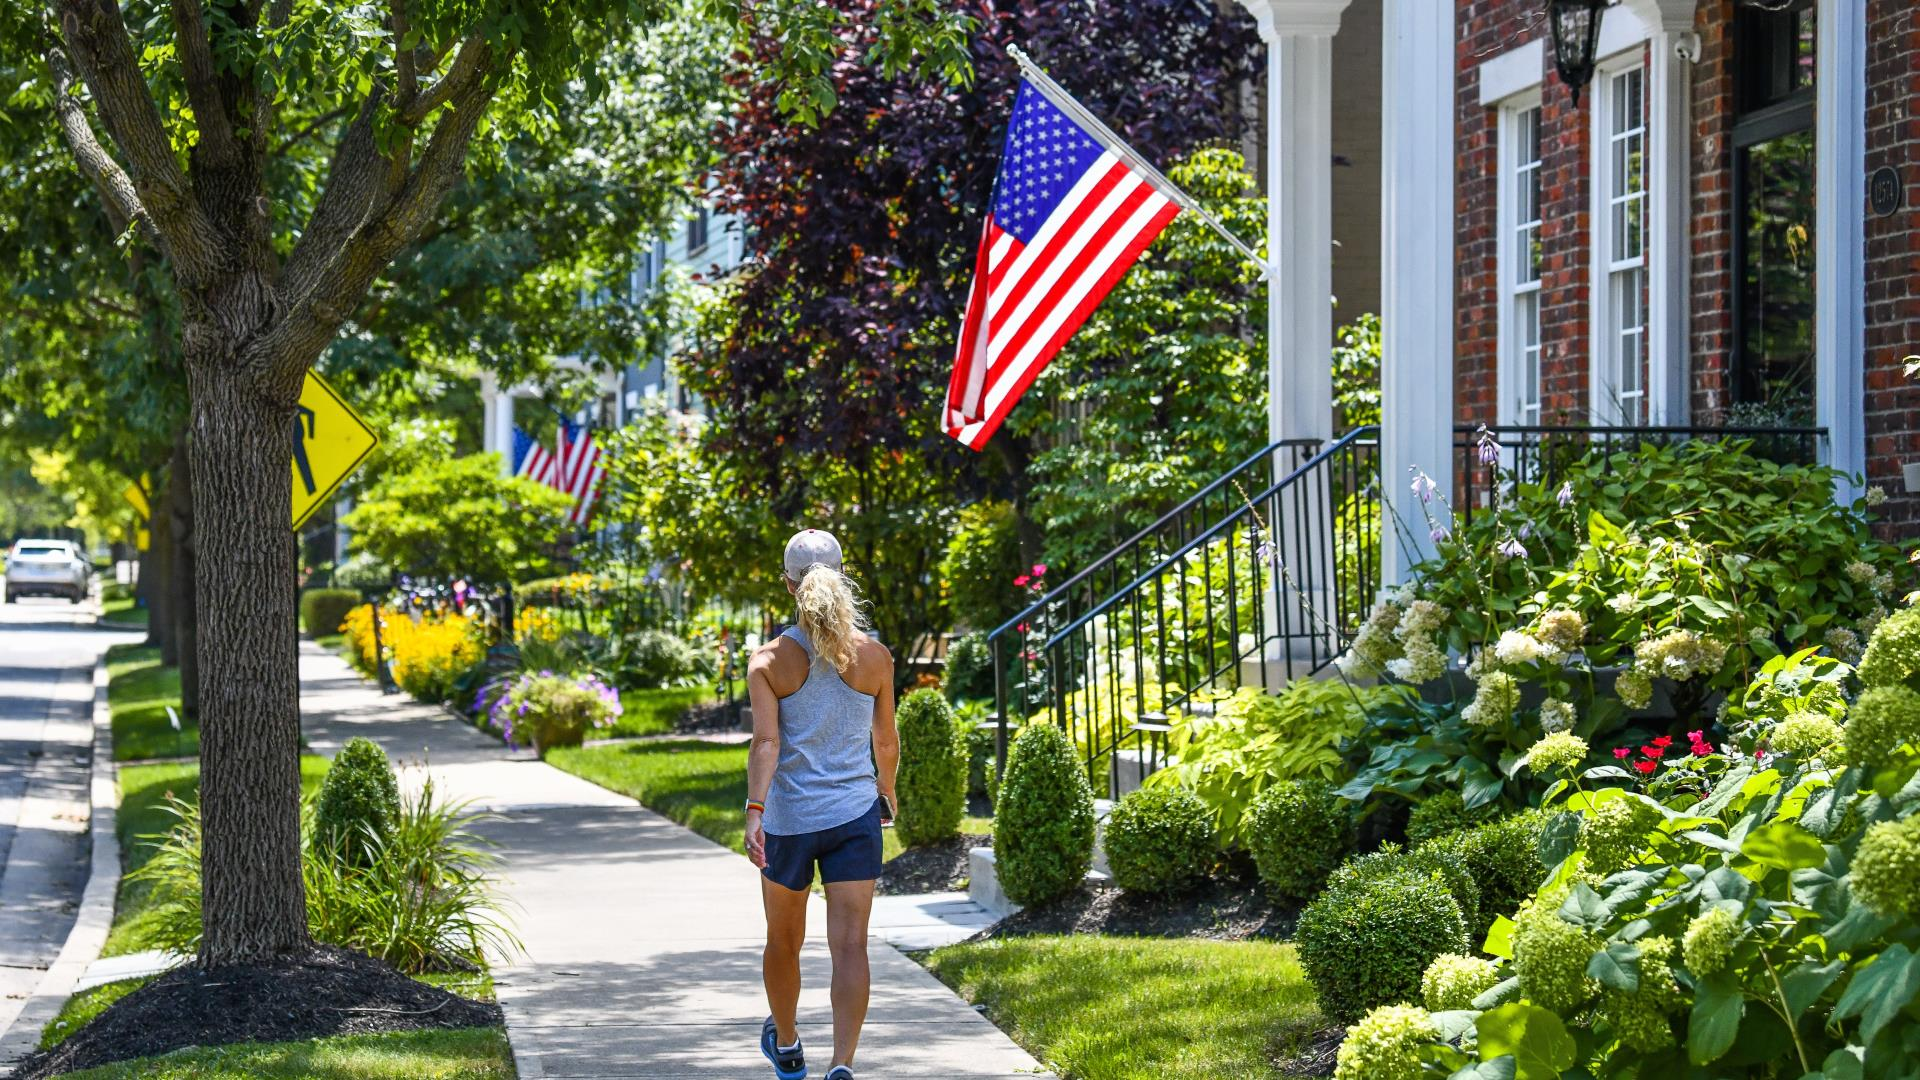 Woman walking on Sidewalk with US Flag